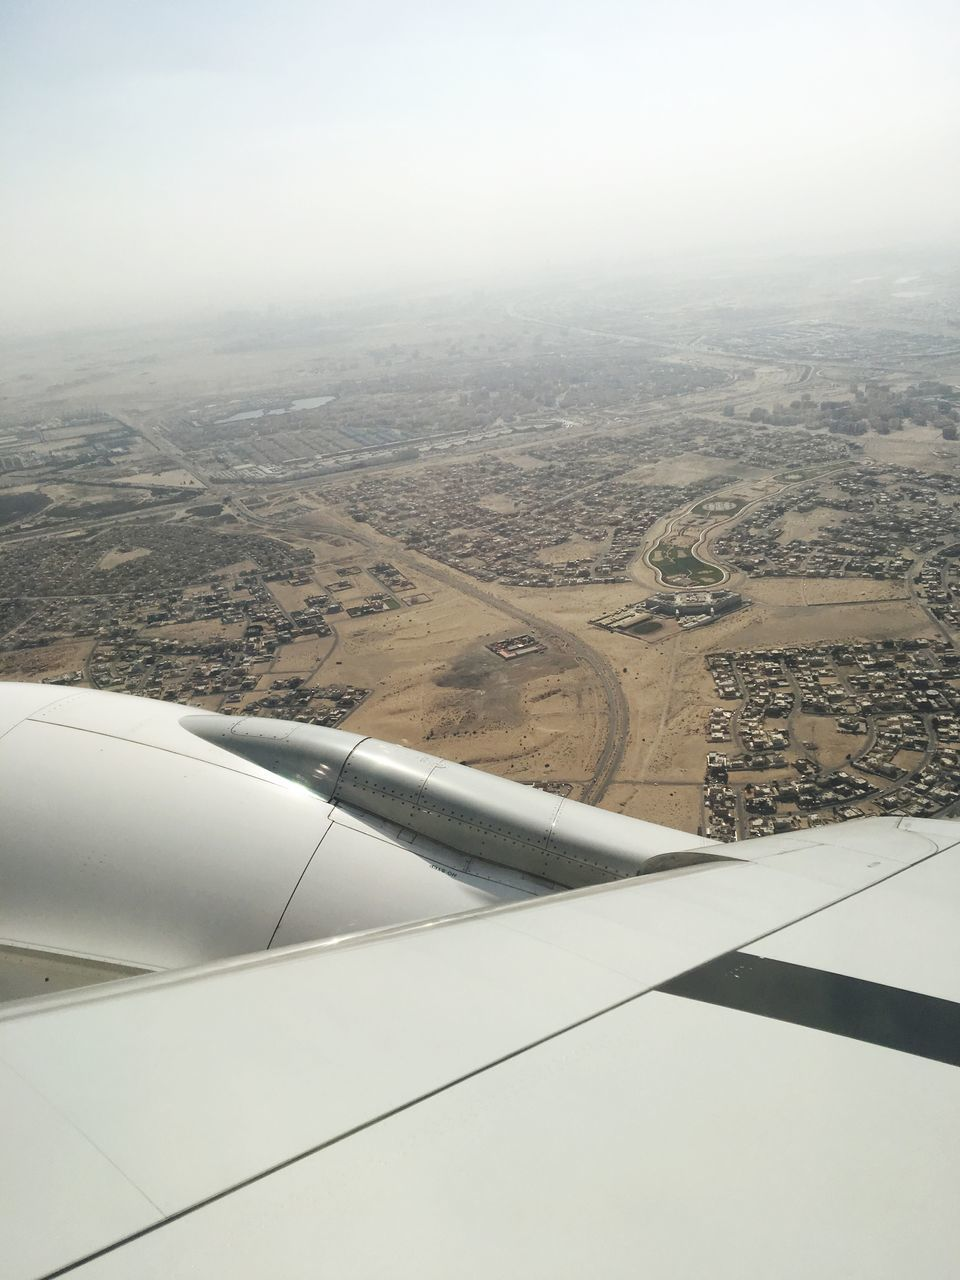 aerial view, airplane, transportation, landscape, aircraft wing, air vehicle, day, mode of transport, journey, nature, jet engine, travel, outdoors, no people, beauty in nature, flying, mid-air, airplane wing, scenics, sky, view into land